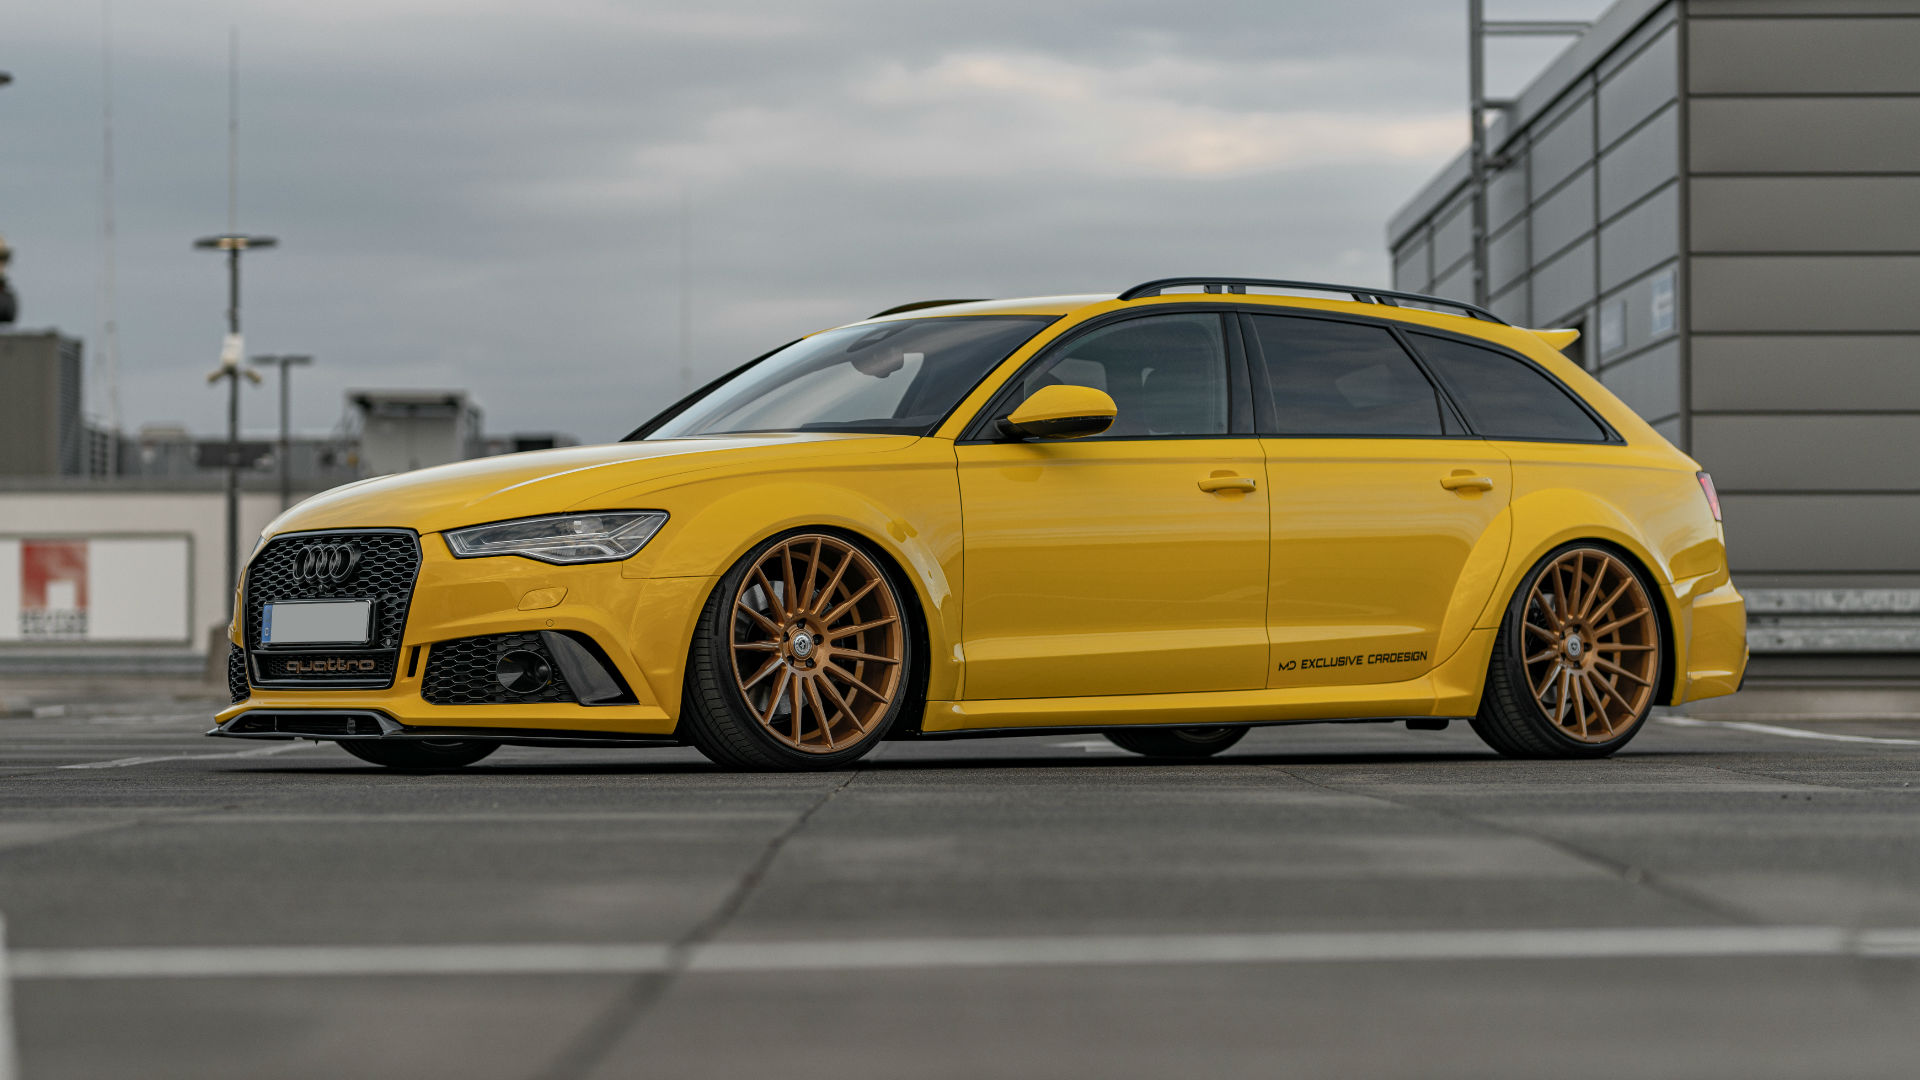 Audi A6 C7 Allroad 3 0 Tdi Tuning Pd600r Widebody Aero Kit Artform Af 401 Wheels In 10 5x21 M D Exclusive Cardesign